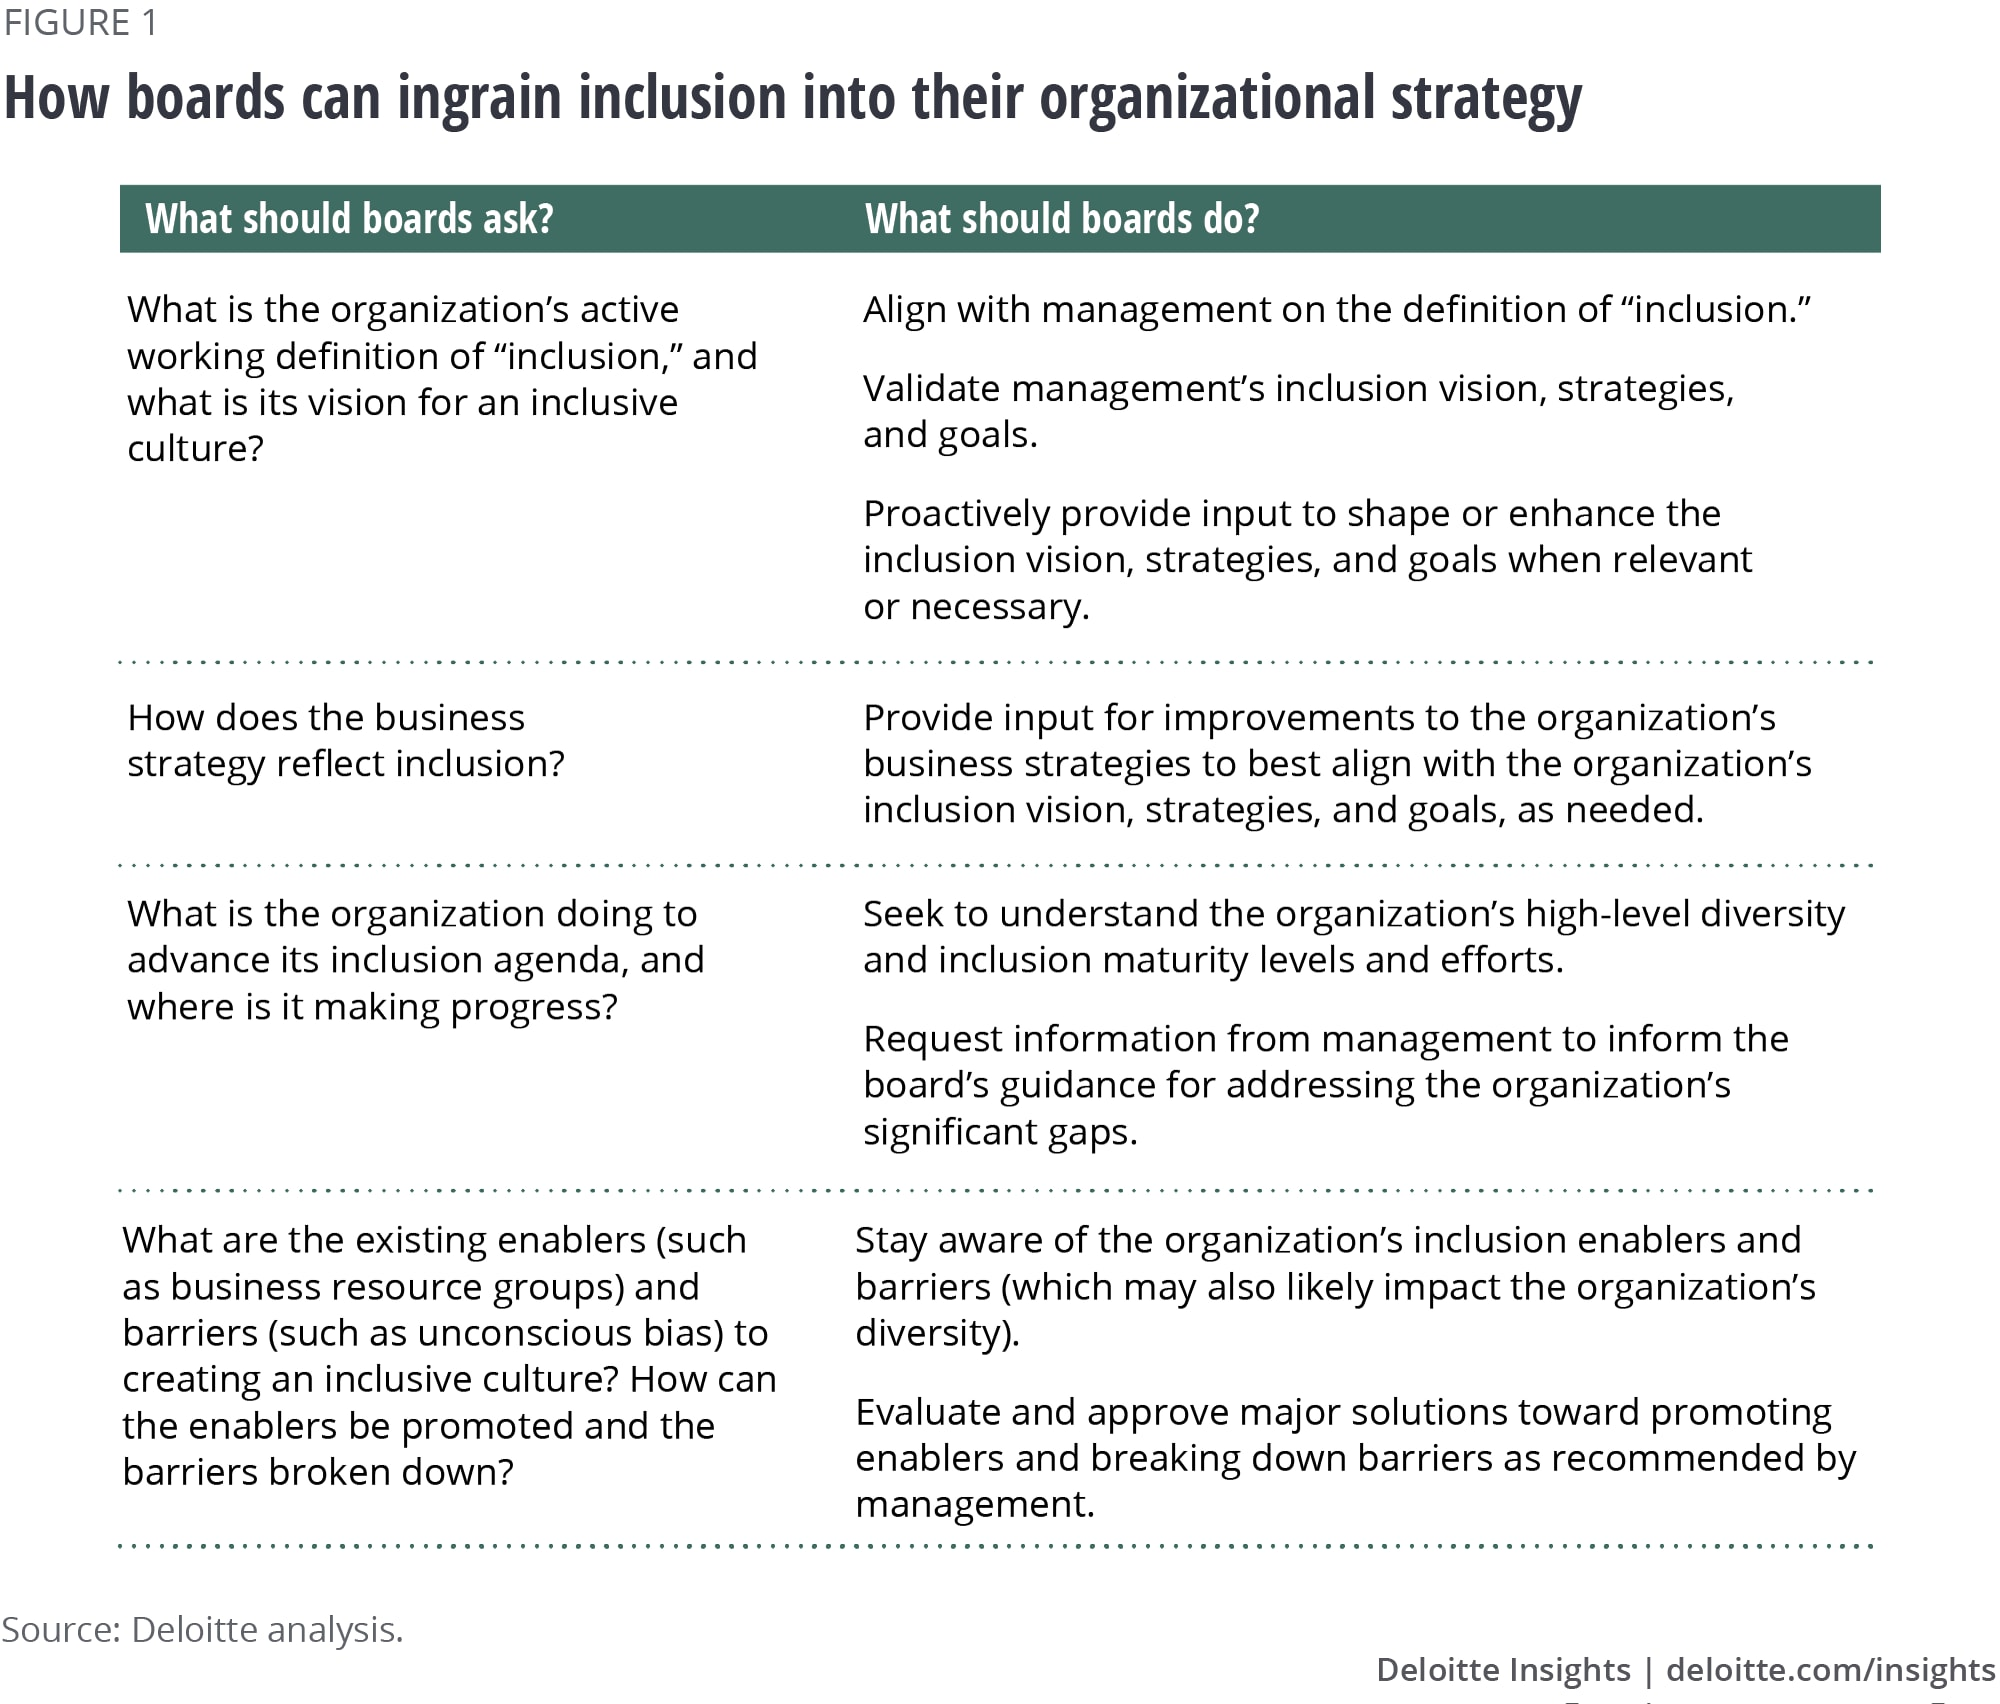 How boards can ingrain inclusion into their organizational strategy